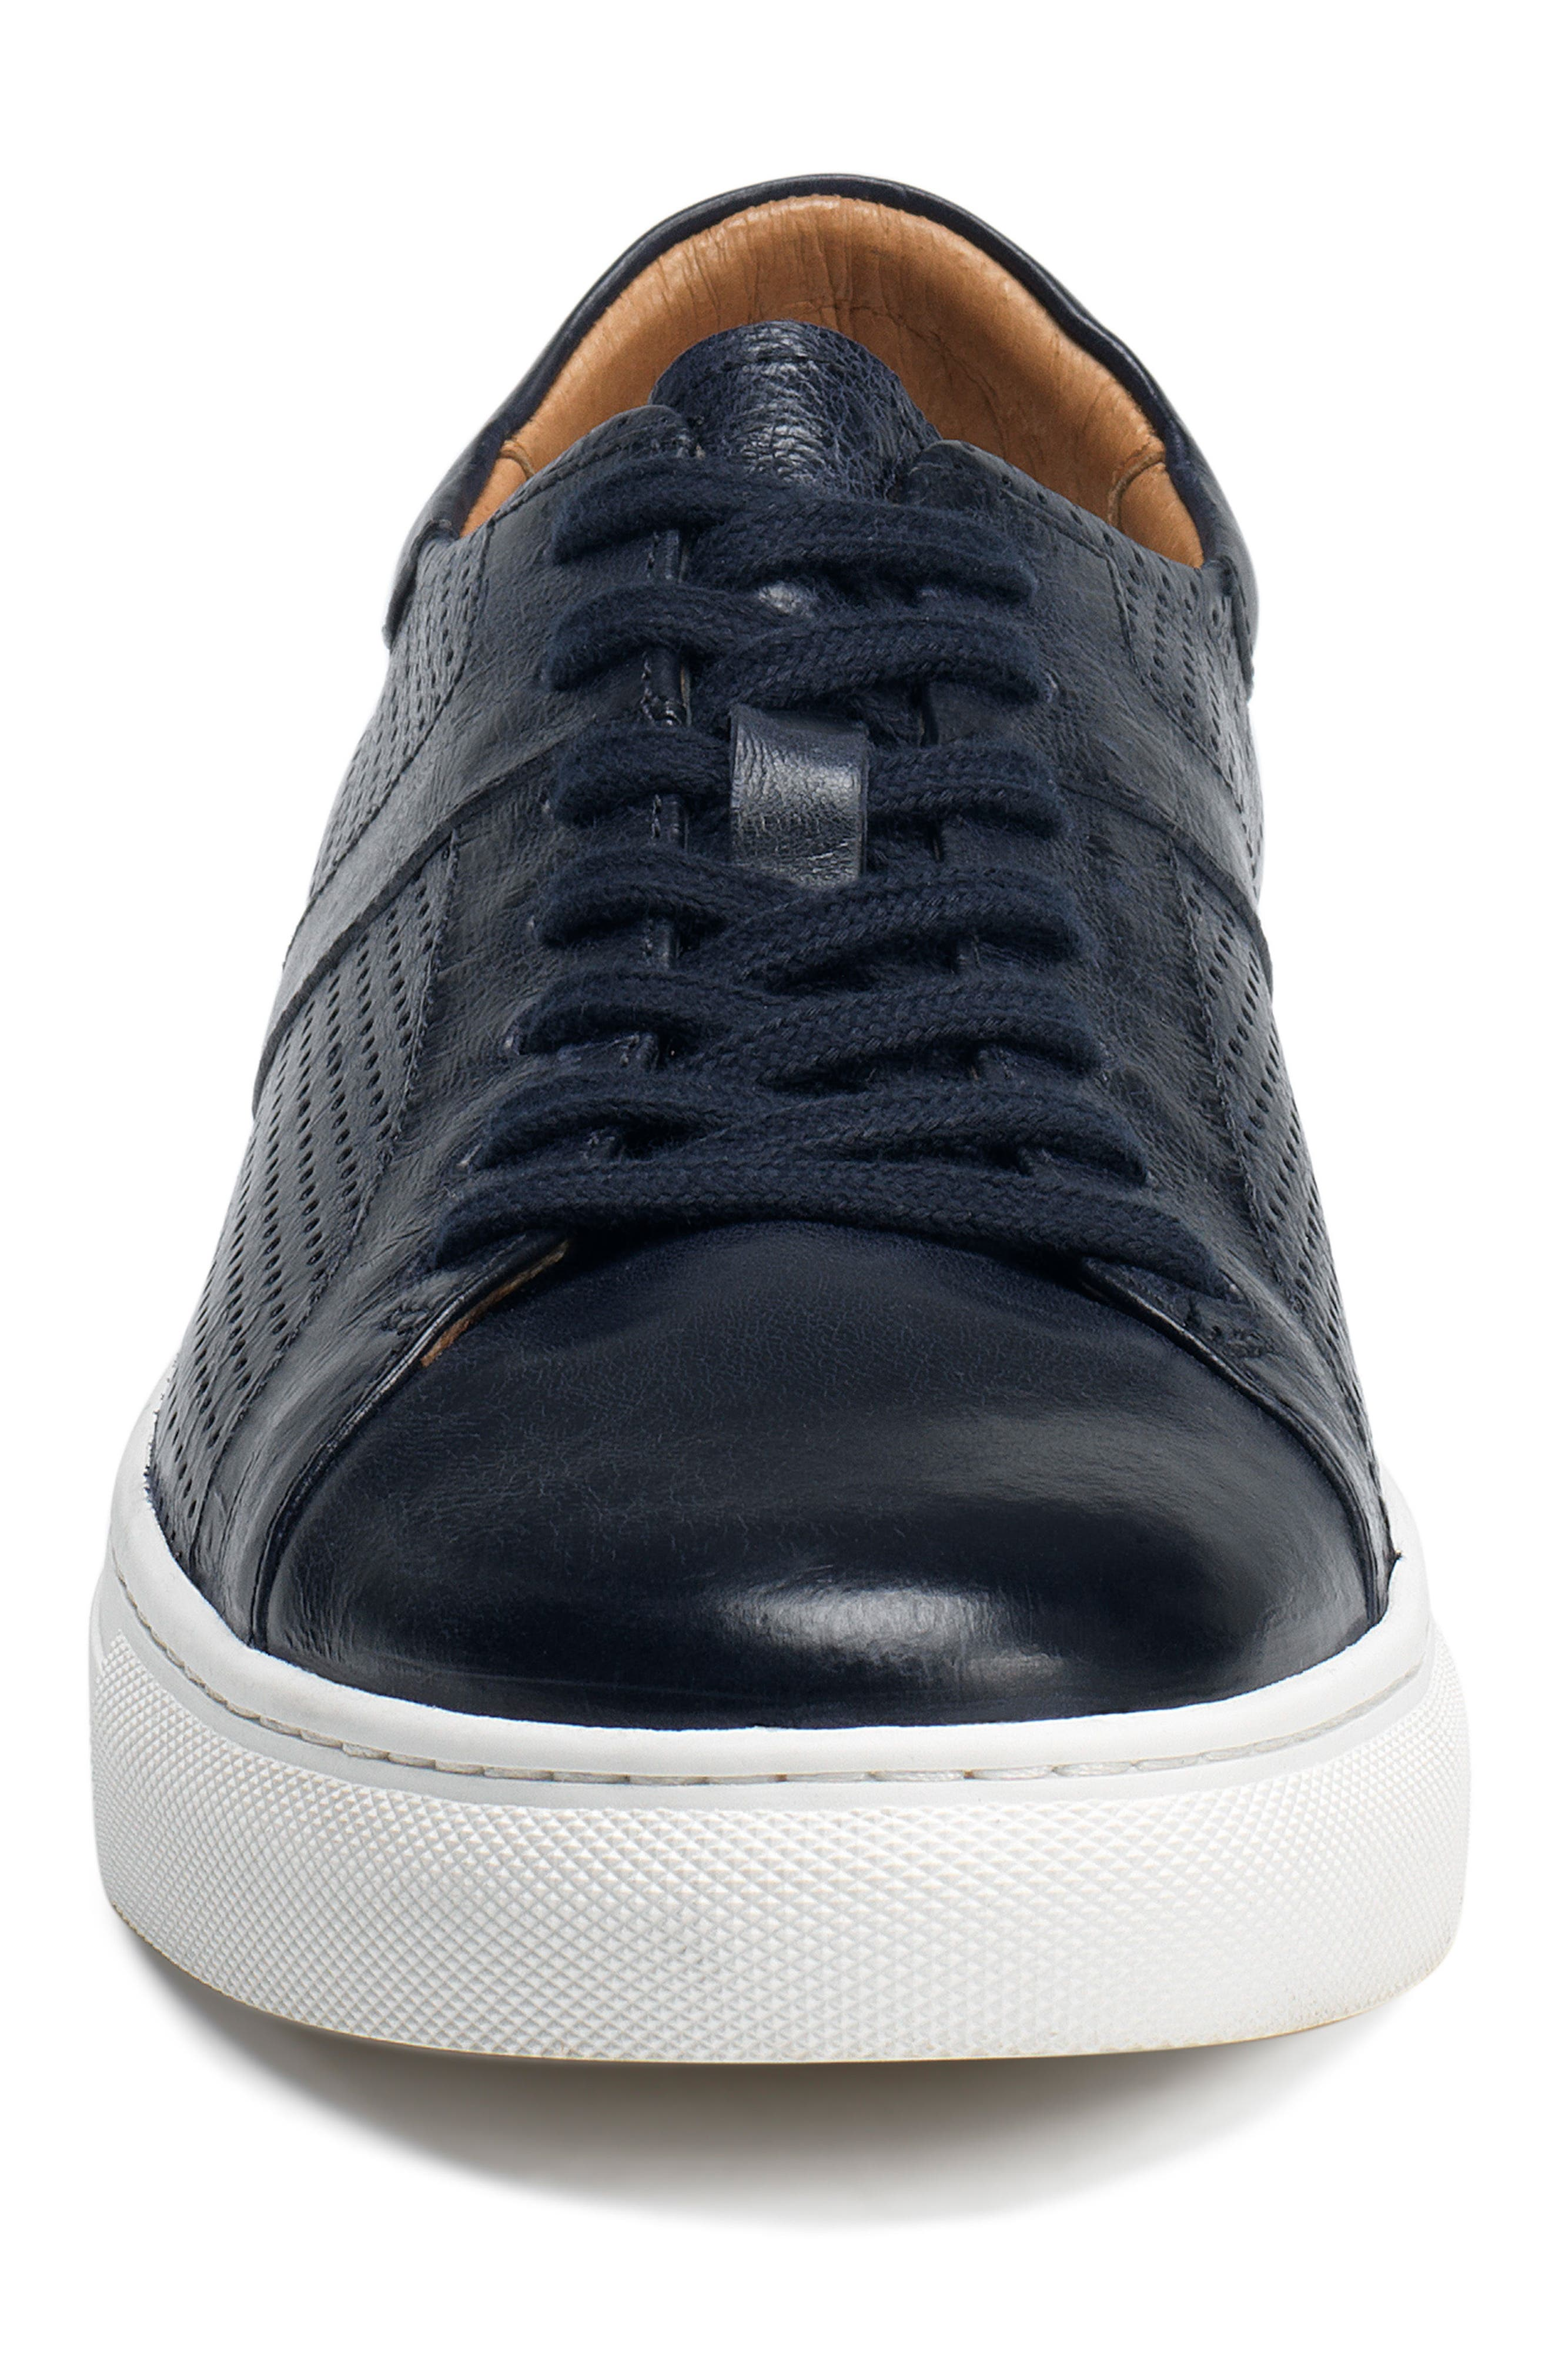 Aaron Sneaker,                             Alternate thumbnail 4, color,                             Navy Leather